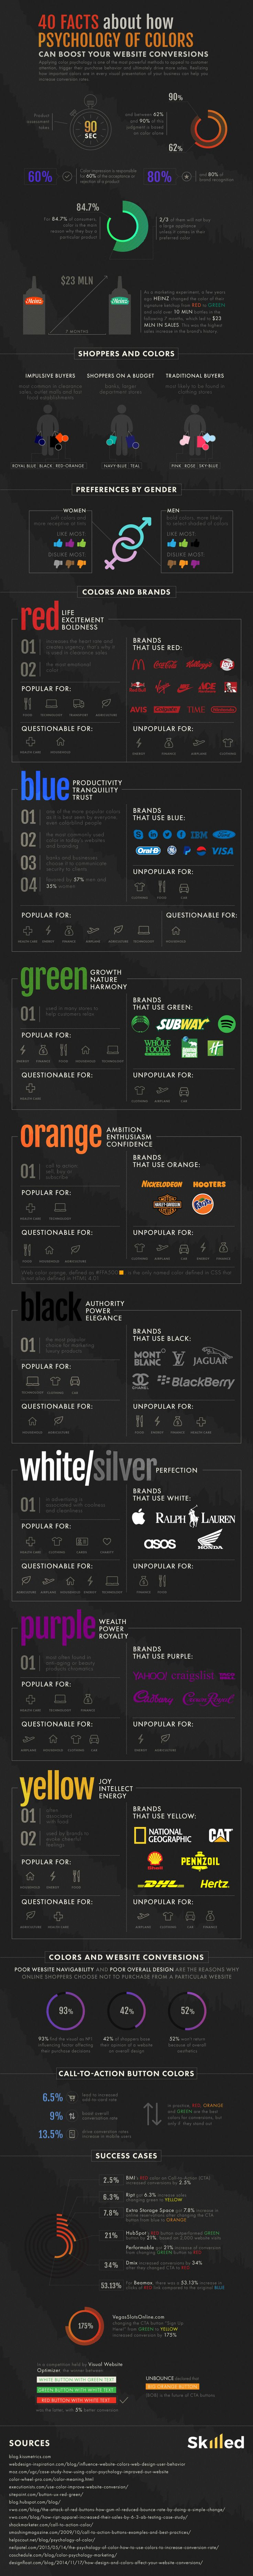 40 Facts About #Colour #Psychology to Boost Your Website Conversions #Infographic #WebDesign